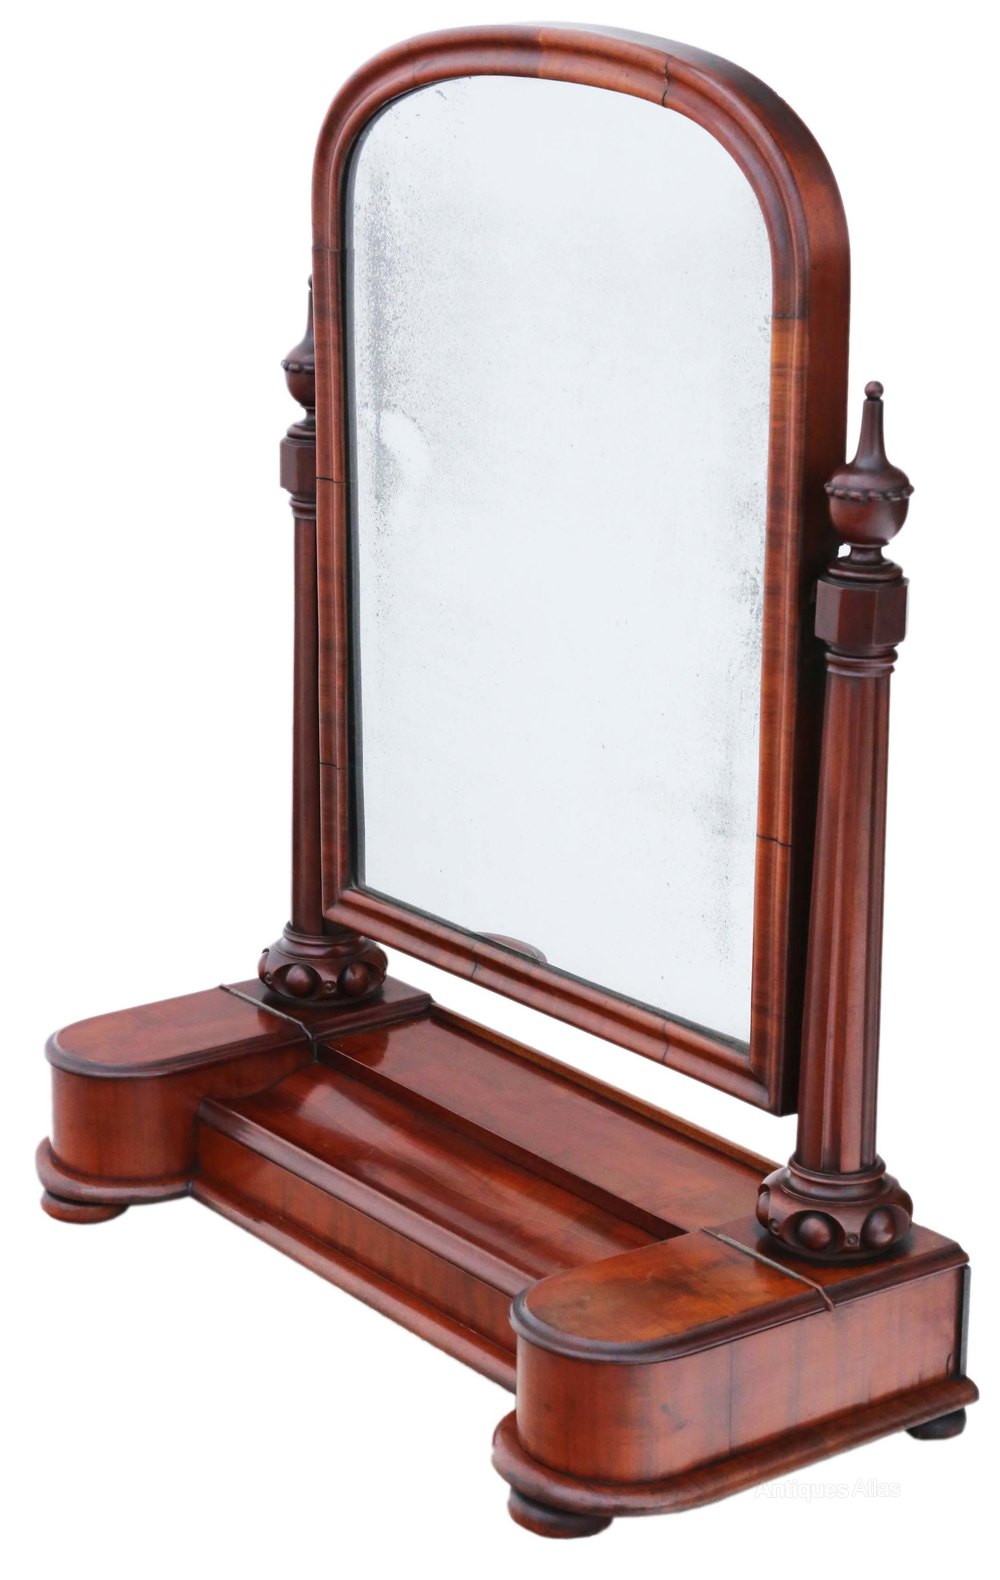 Antique swinging table mirror due time